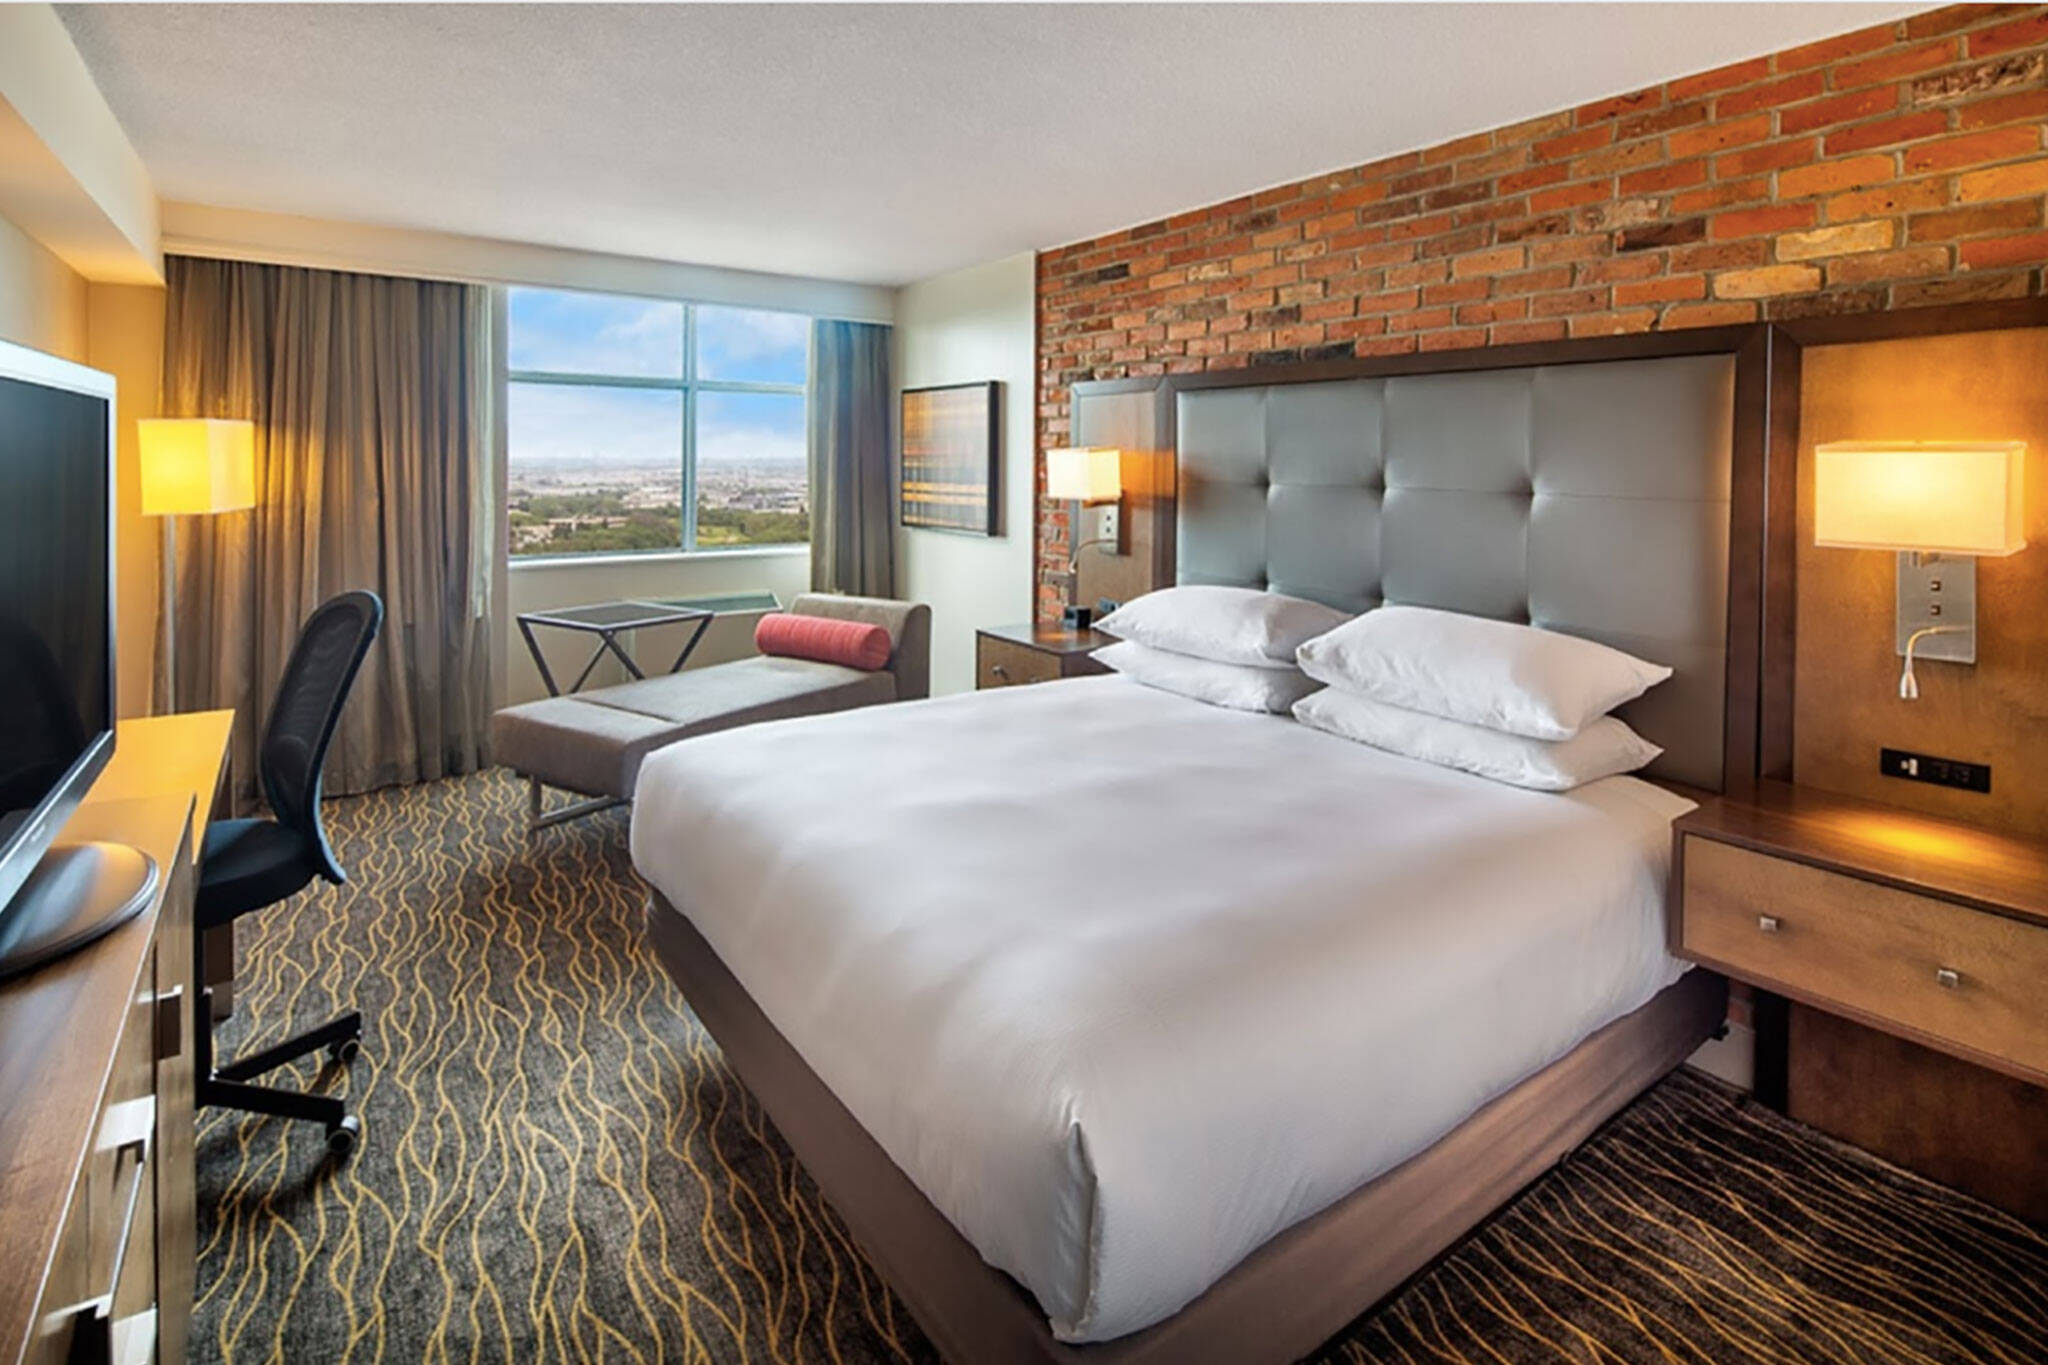 doubletree by hilton toronto airport hotel